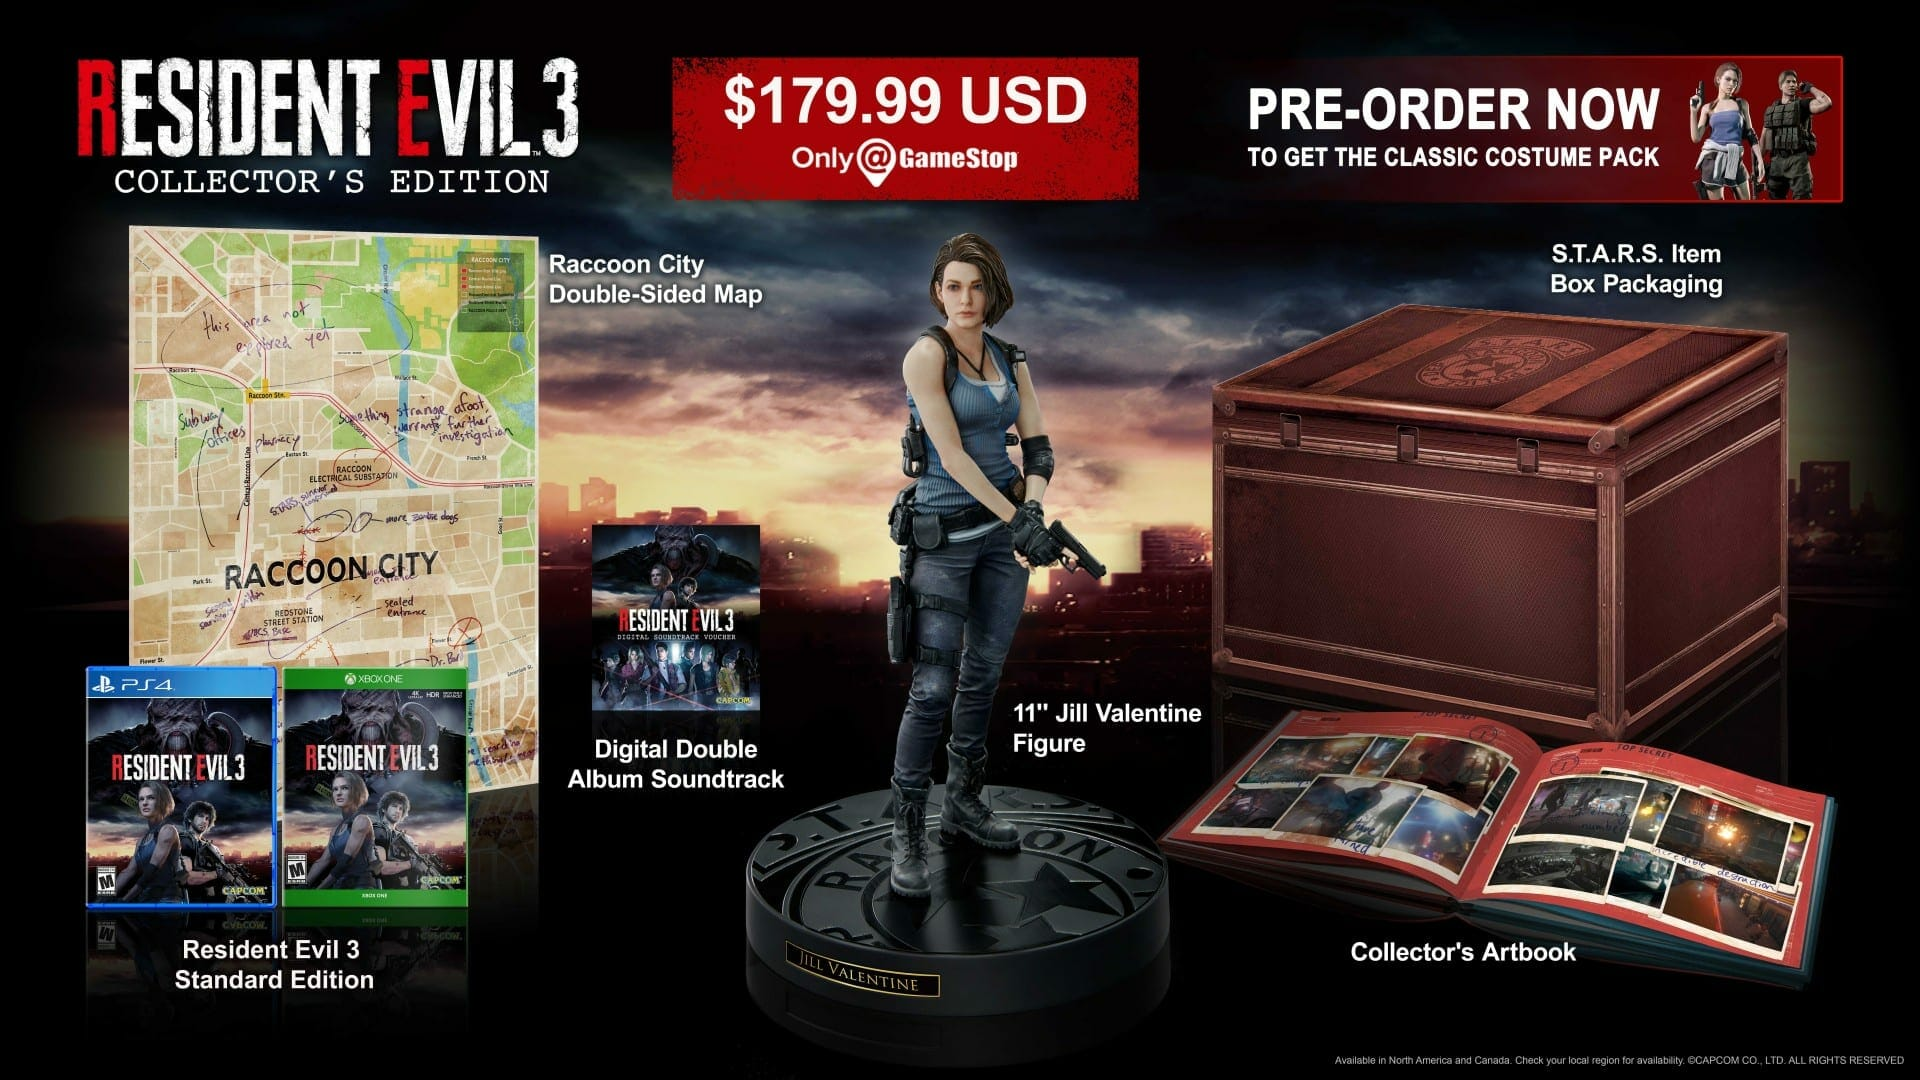 Collectors Edition - Resident Evil 3 Remake: Release date, Pre-Order and Project Resistance Details Revealed